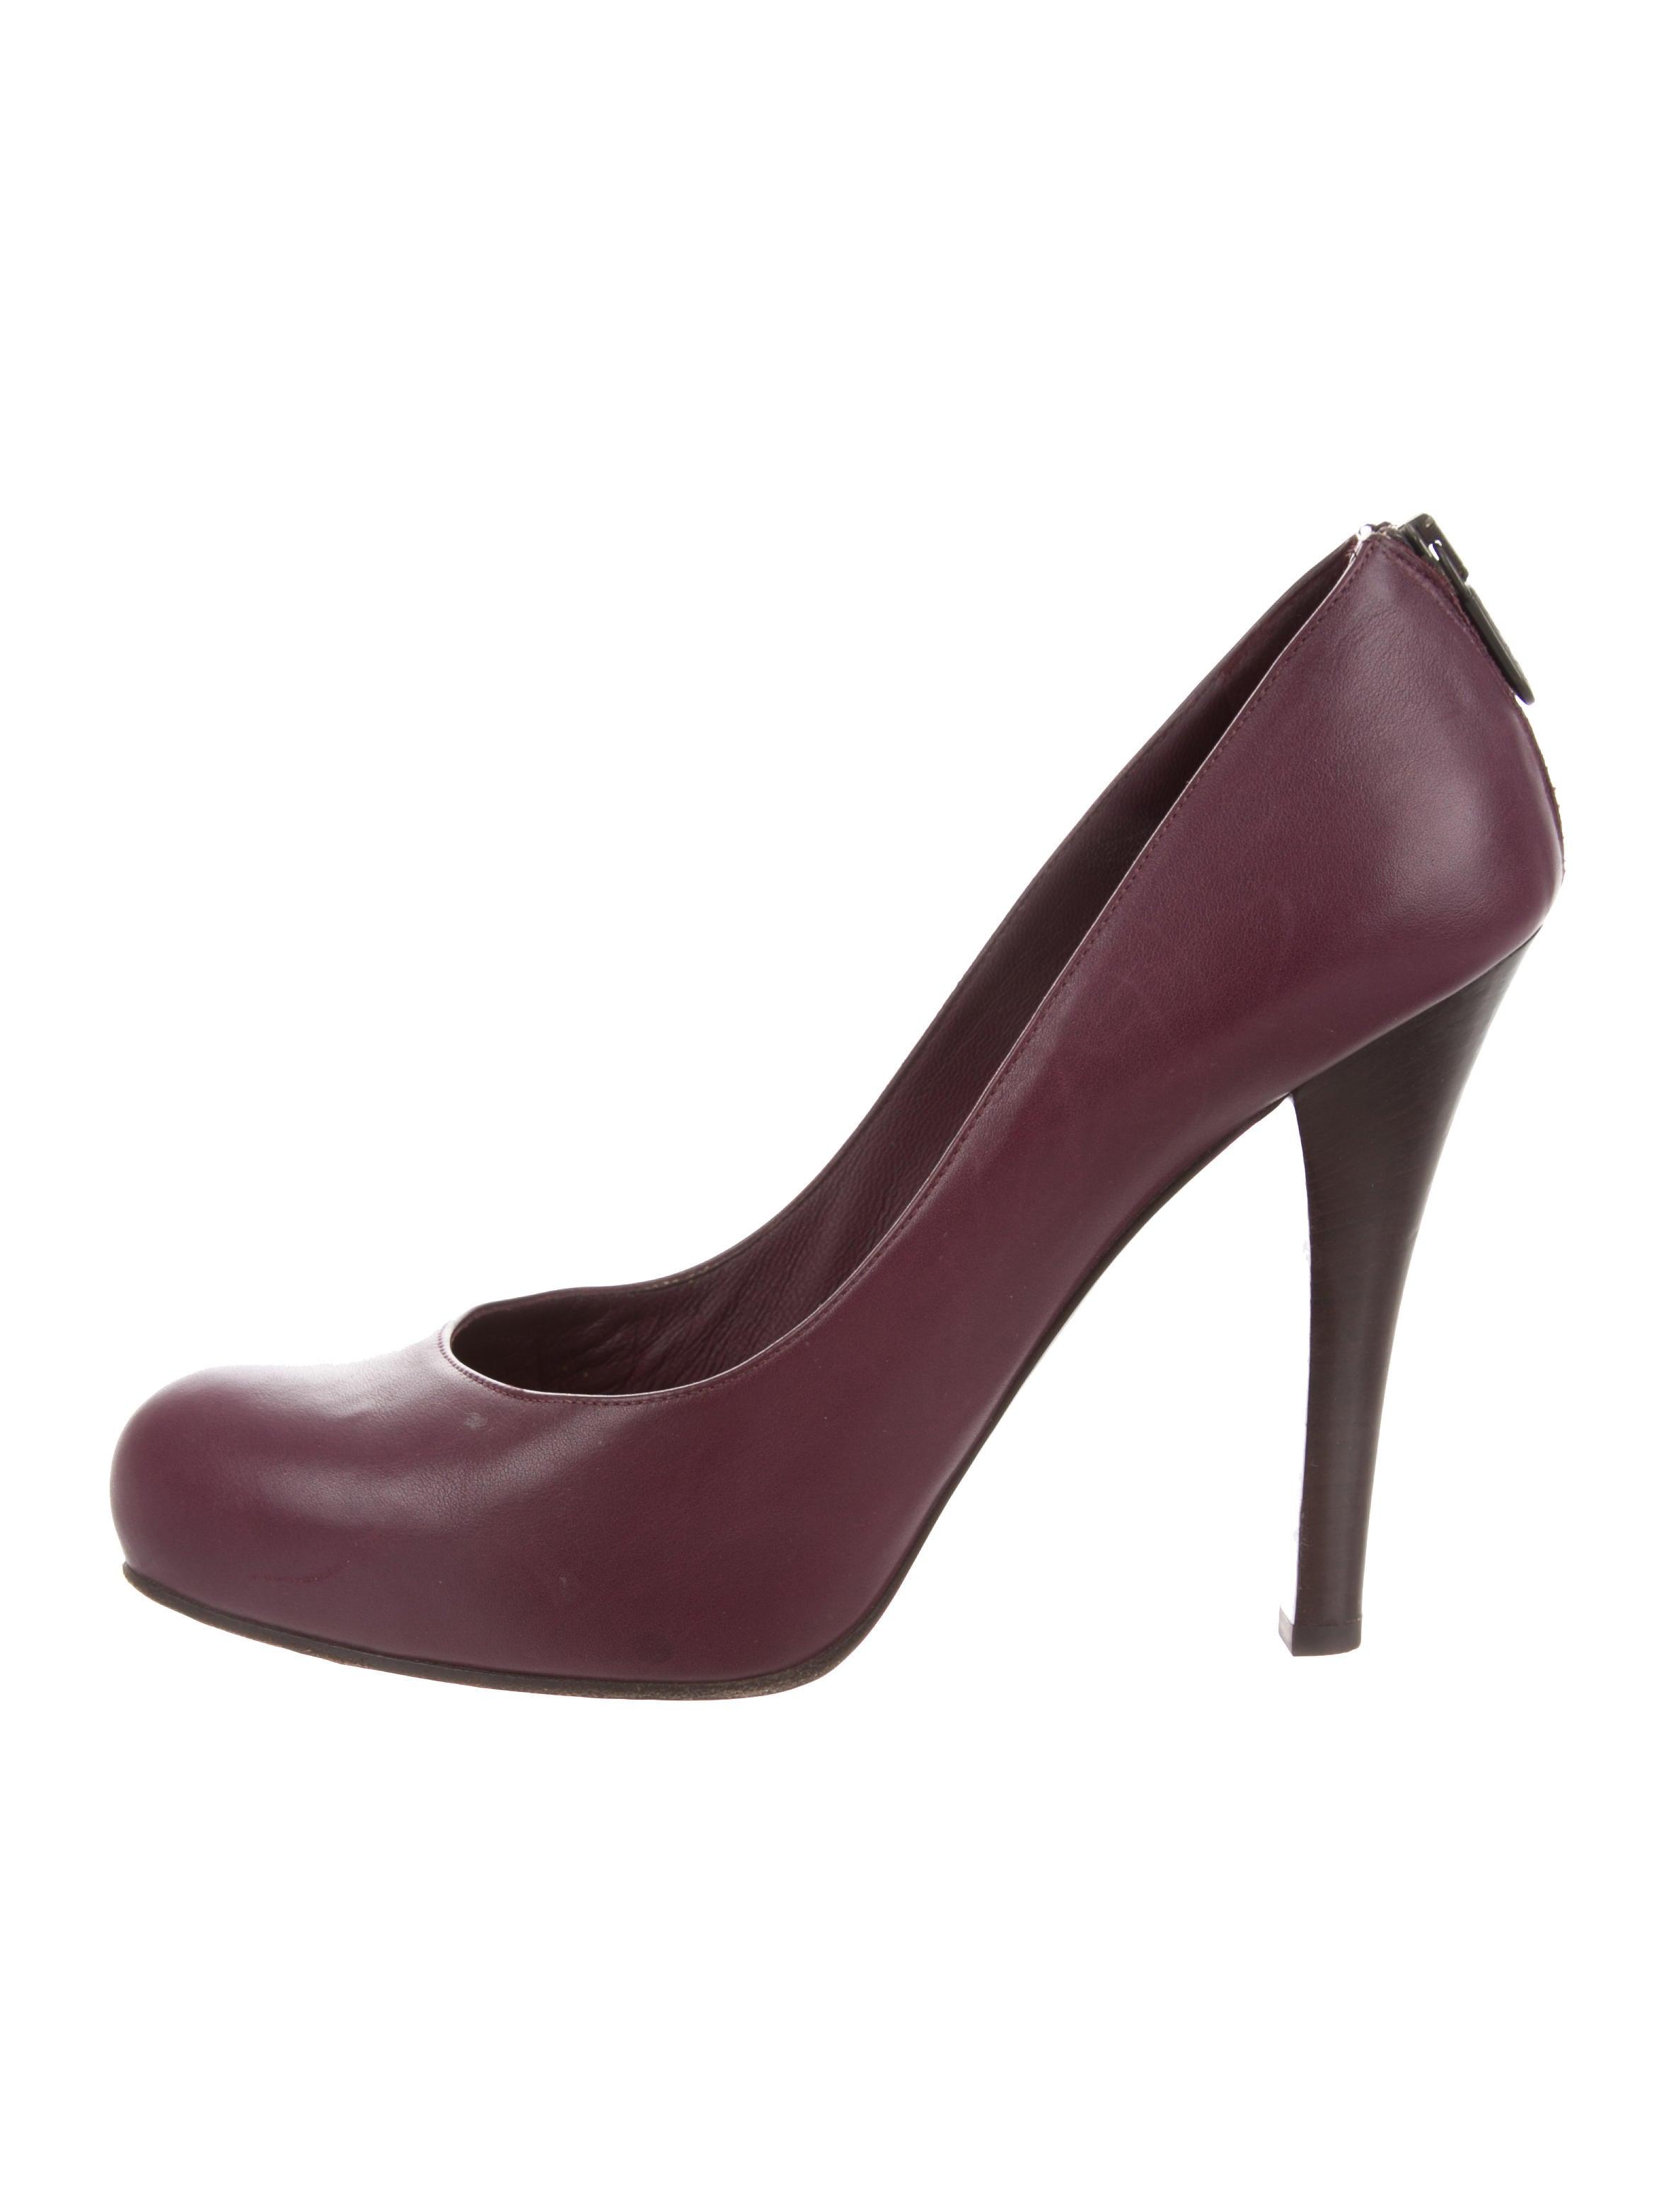 Bottega Veneta Round toe pumps oCtCh